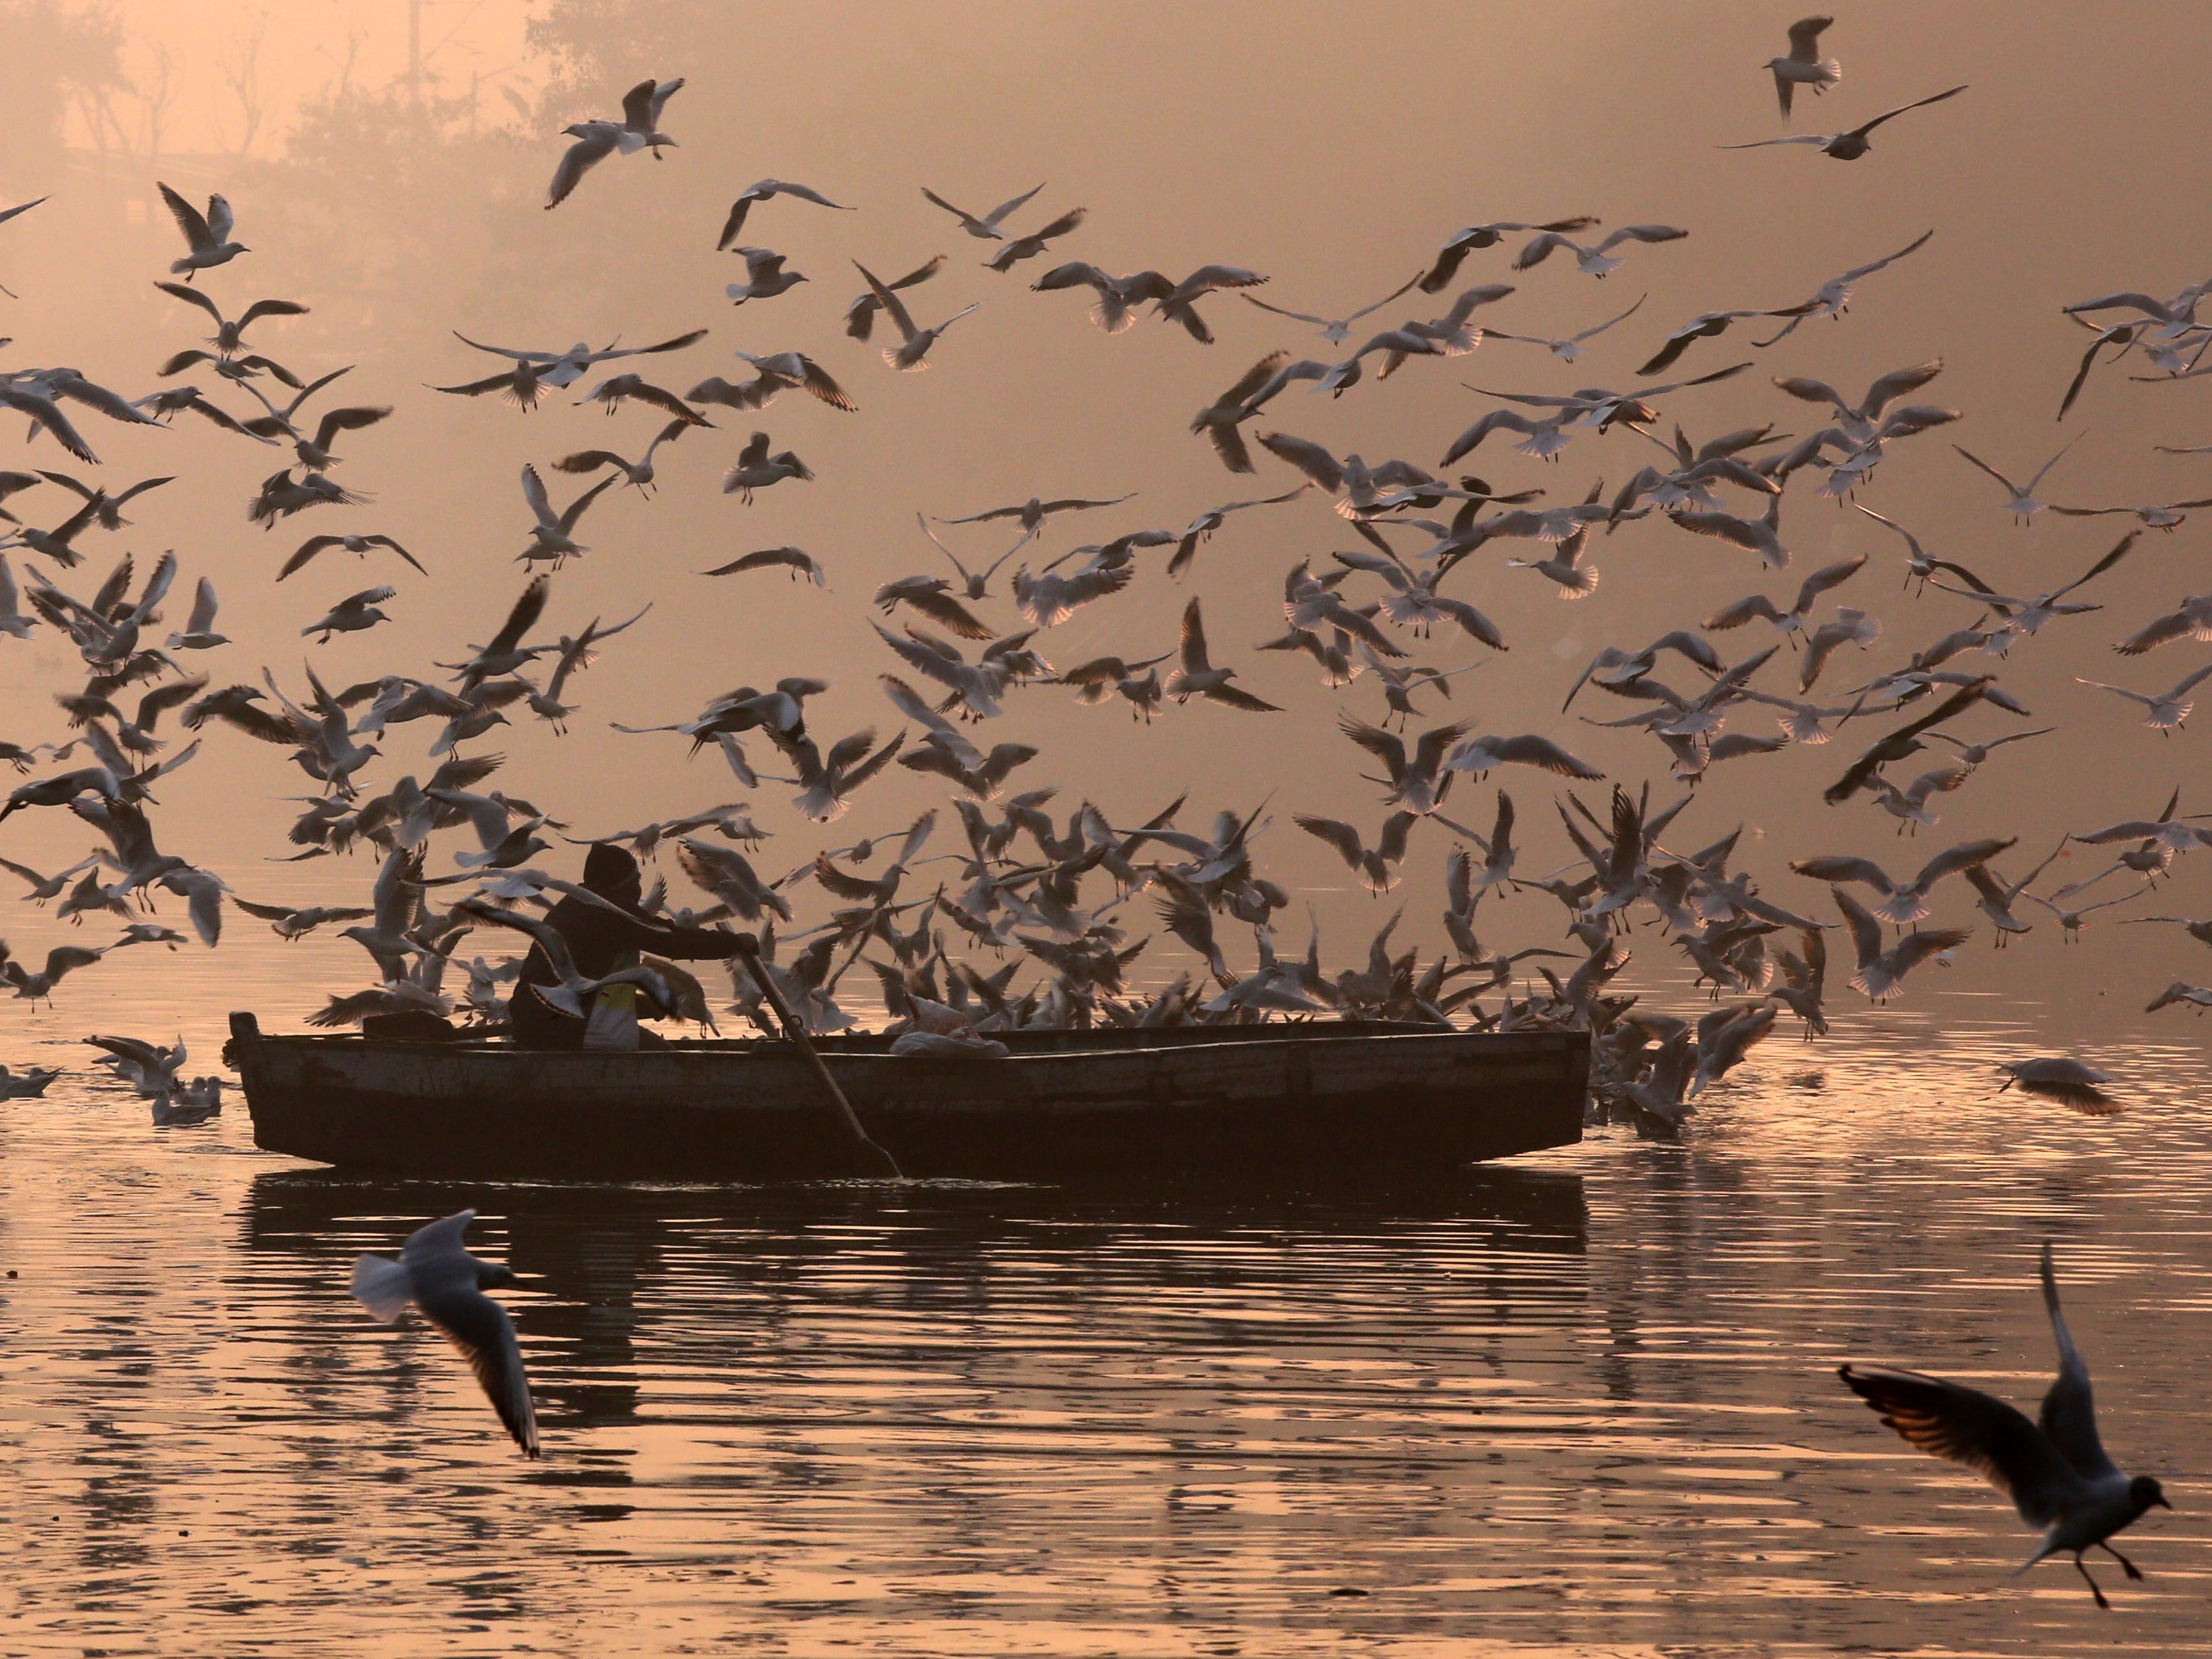 A boatman rows his boat through migratory birds on a foggy morning in the polluted Yamuna River in New Delhi, India,  Dec. 29, 2018. Migratory birds arrive in the winter season from different parts of India and neighboring countries and are expected to leave in March 2019.